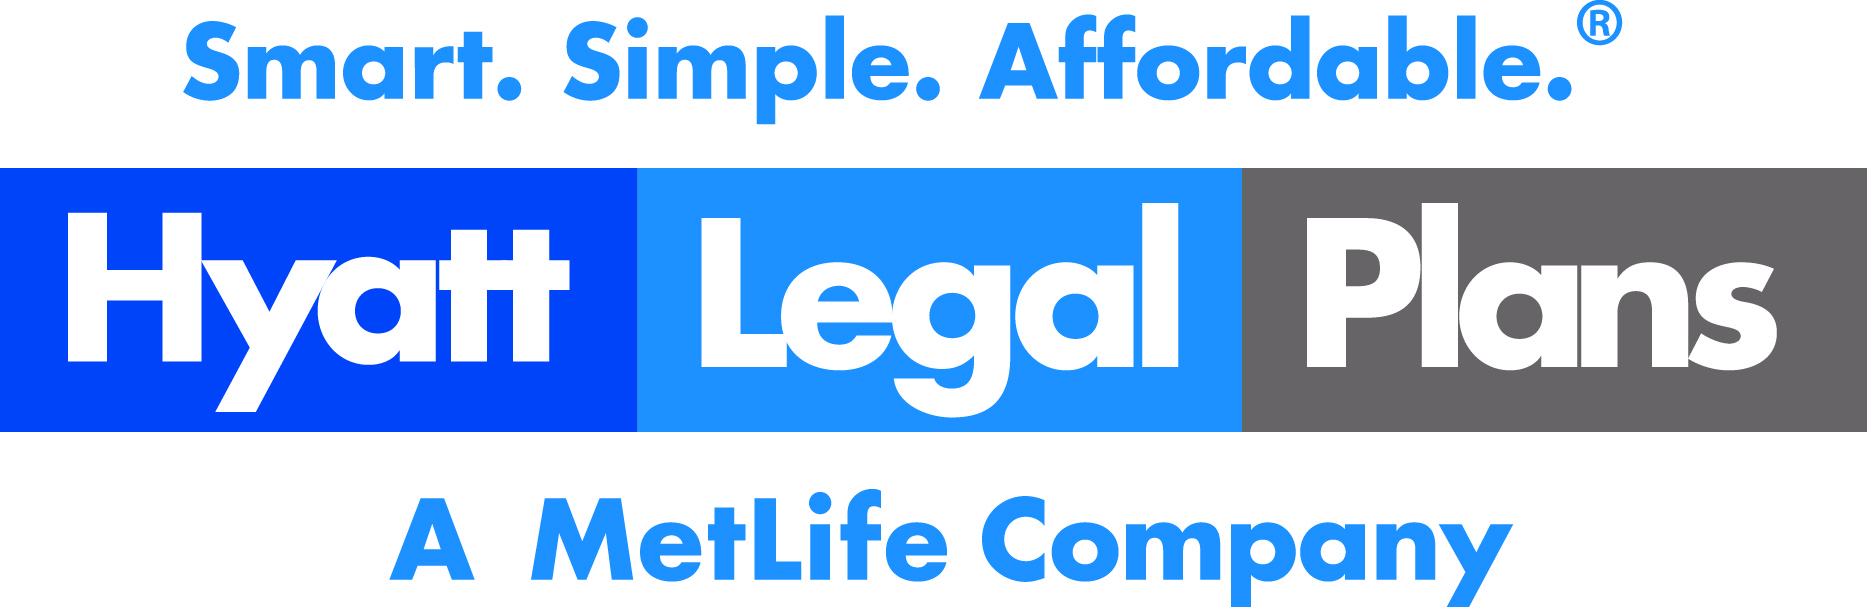 Benefits portal for Affordable legal plan canada